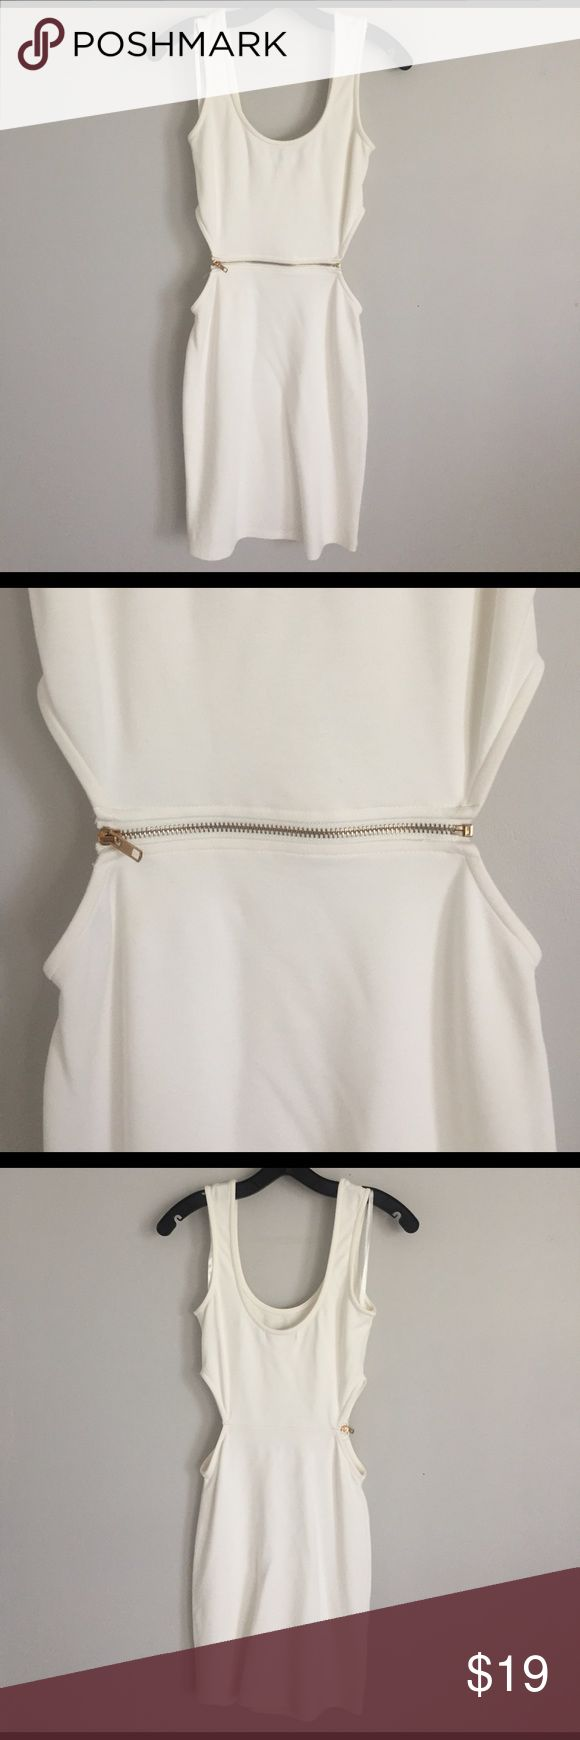 Arden B. - Light Cream Tank Dress Off white cotton mini tank dress has side cut outs and a functional gold zipper in the mid section.  Girl for a girl's night out! Arden B Dresses Mini